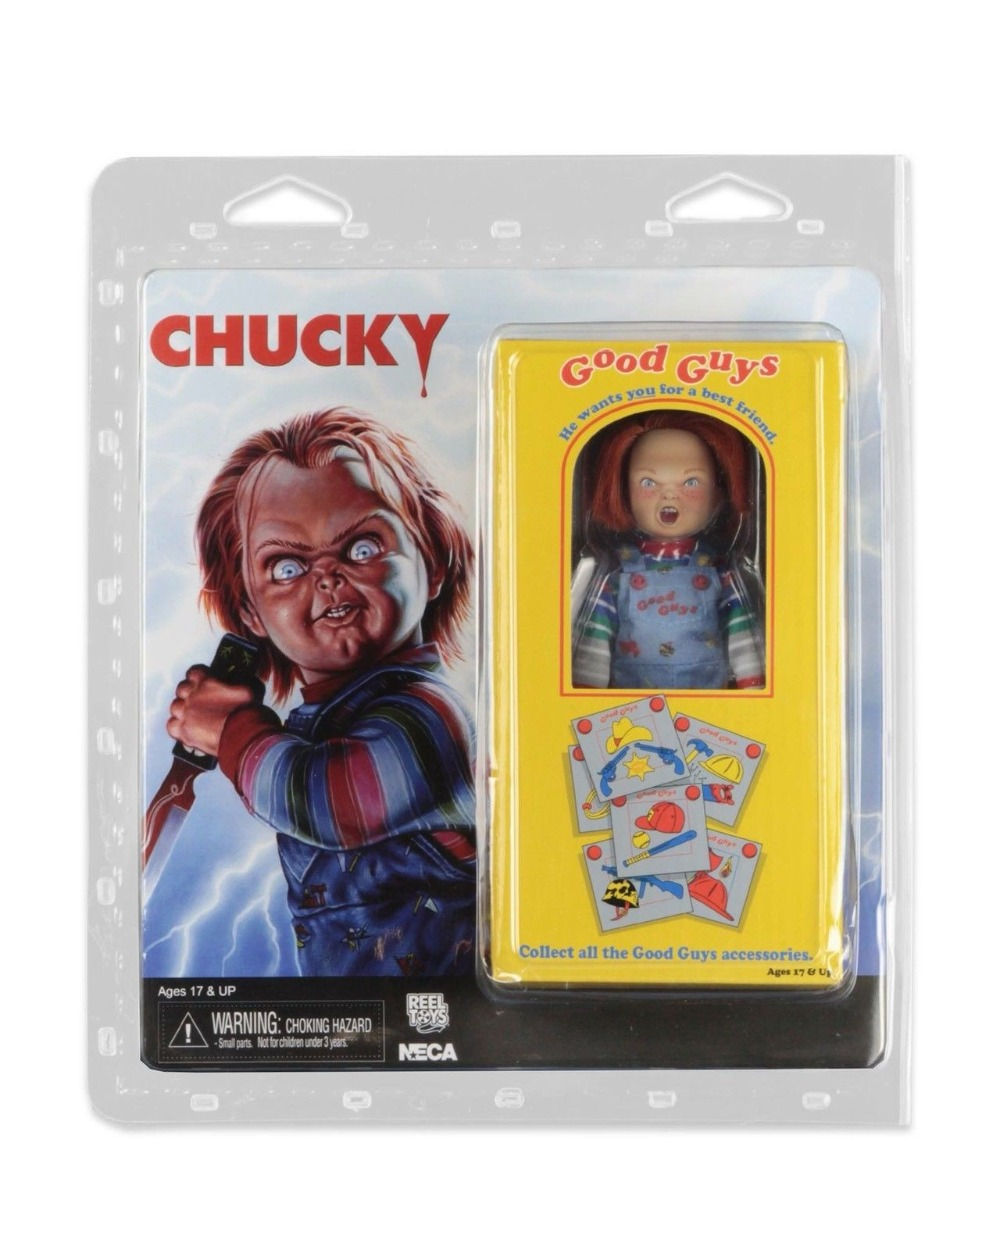 Hot Sale Action Figure Toys Classic Terror Film Figurine NECA Childs Play Good Guys Chucky Hammer <font><b>Bat</b></font> <font><b>Knife</b></font> 8